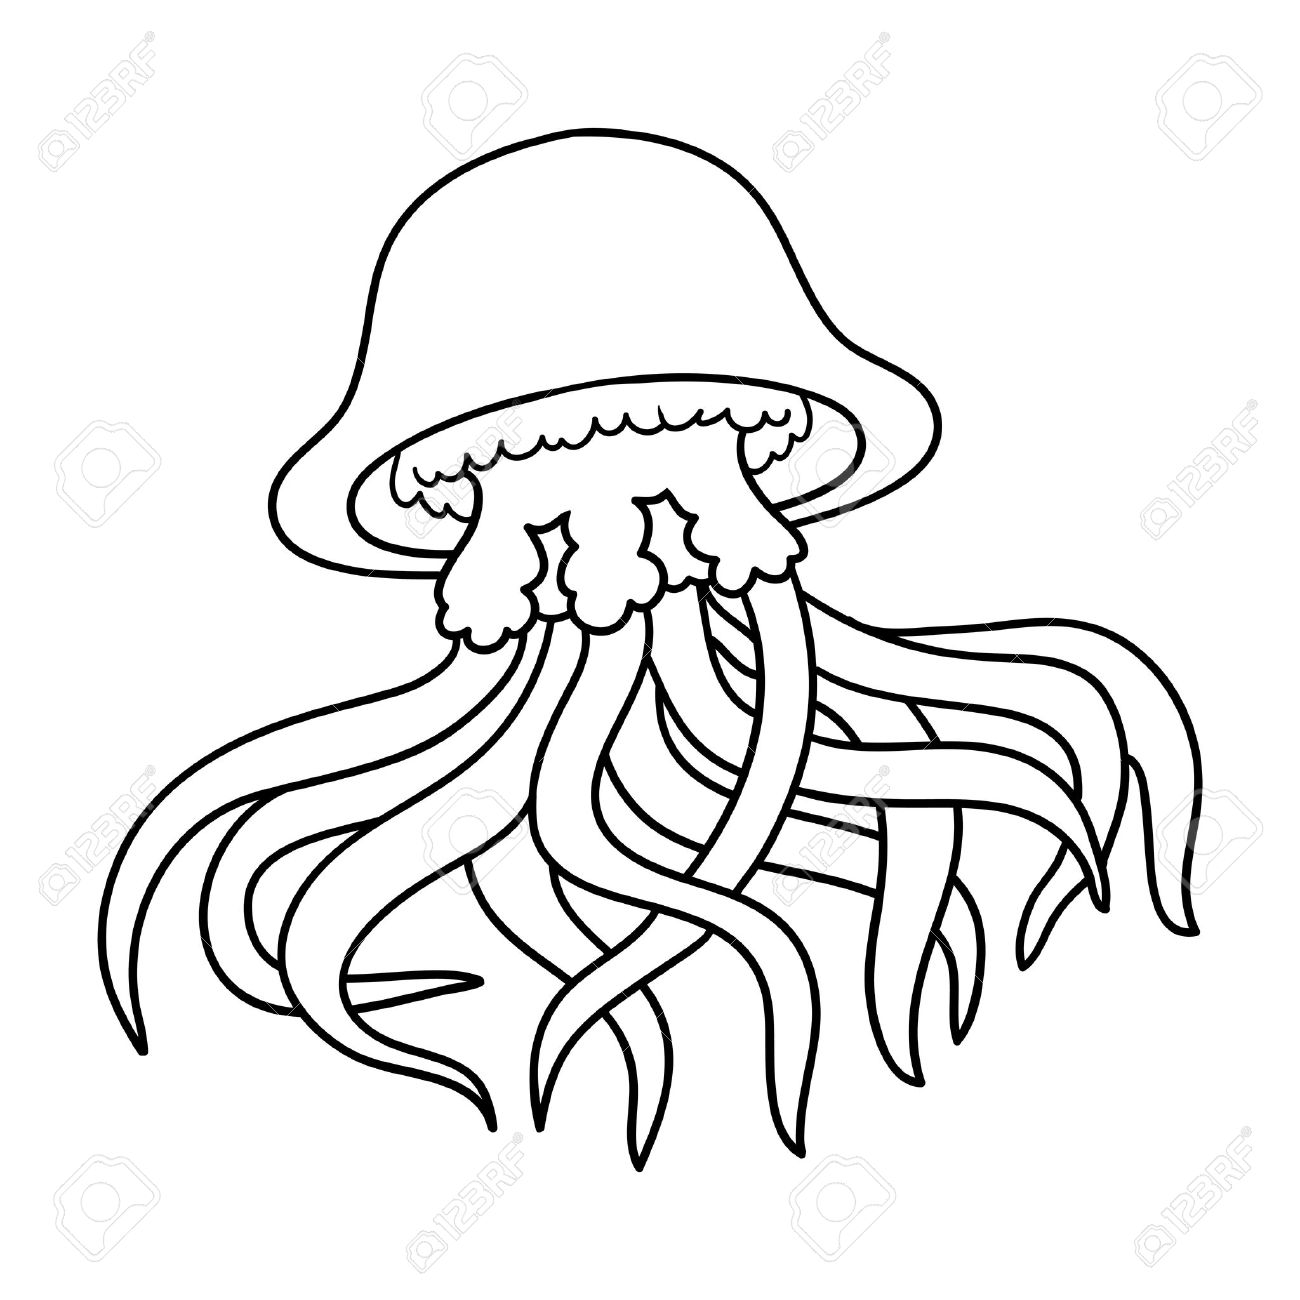 Coloring Book For Children Jellyfish Stock Vector